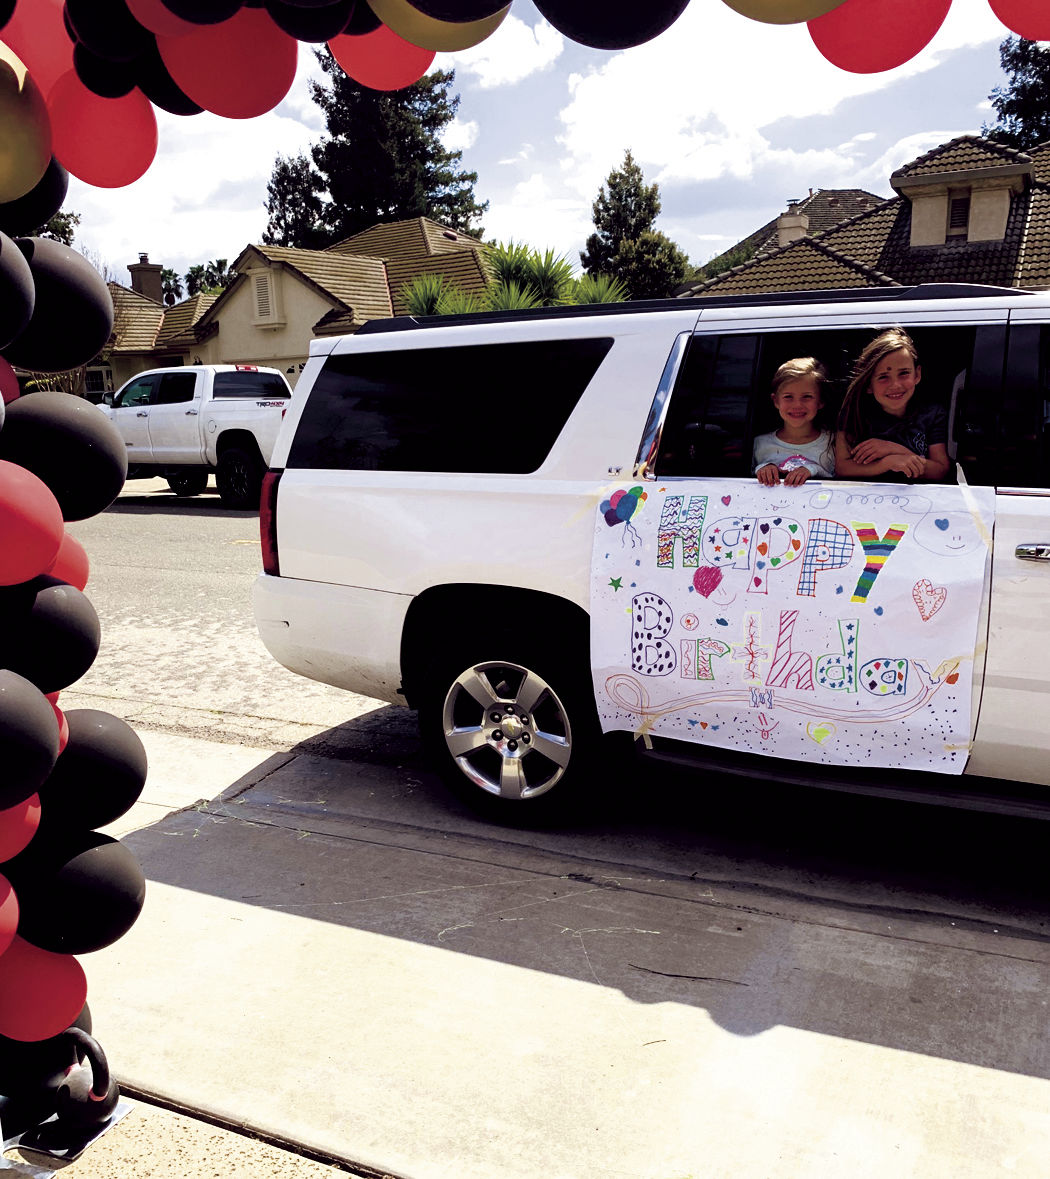 Driven to please: Lodi mom throws drive-up party